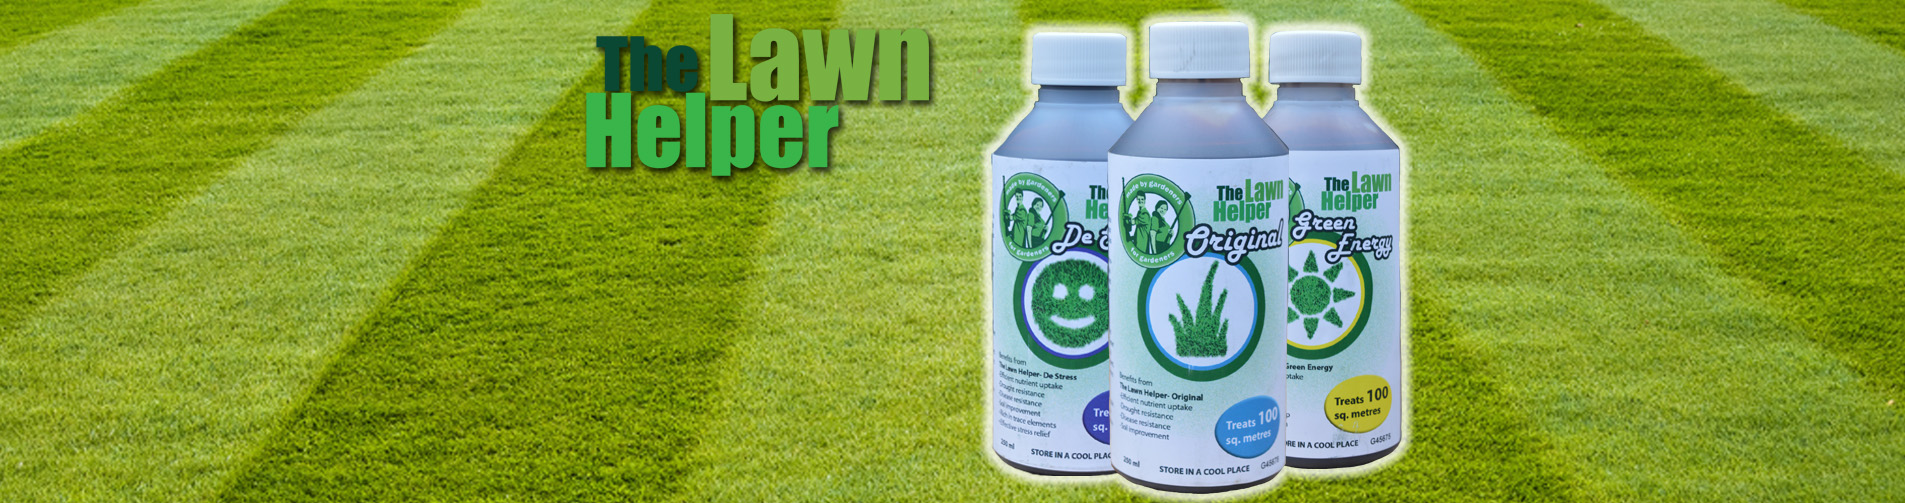 Targeted lawn assistance